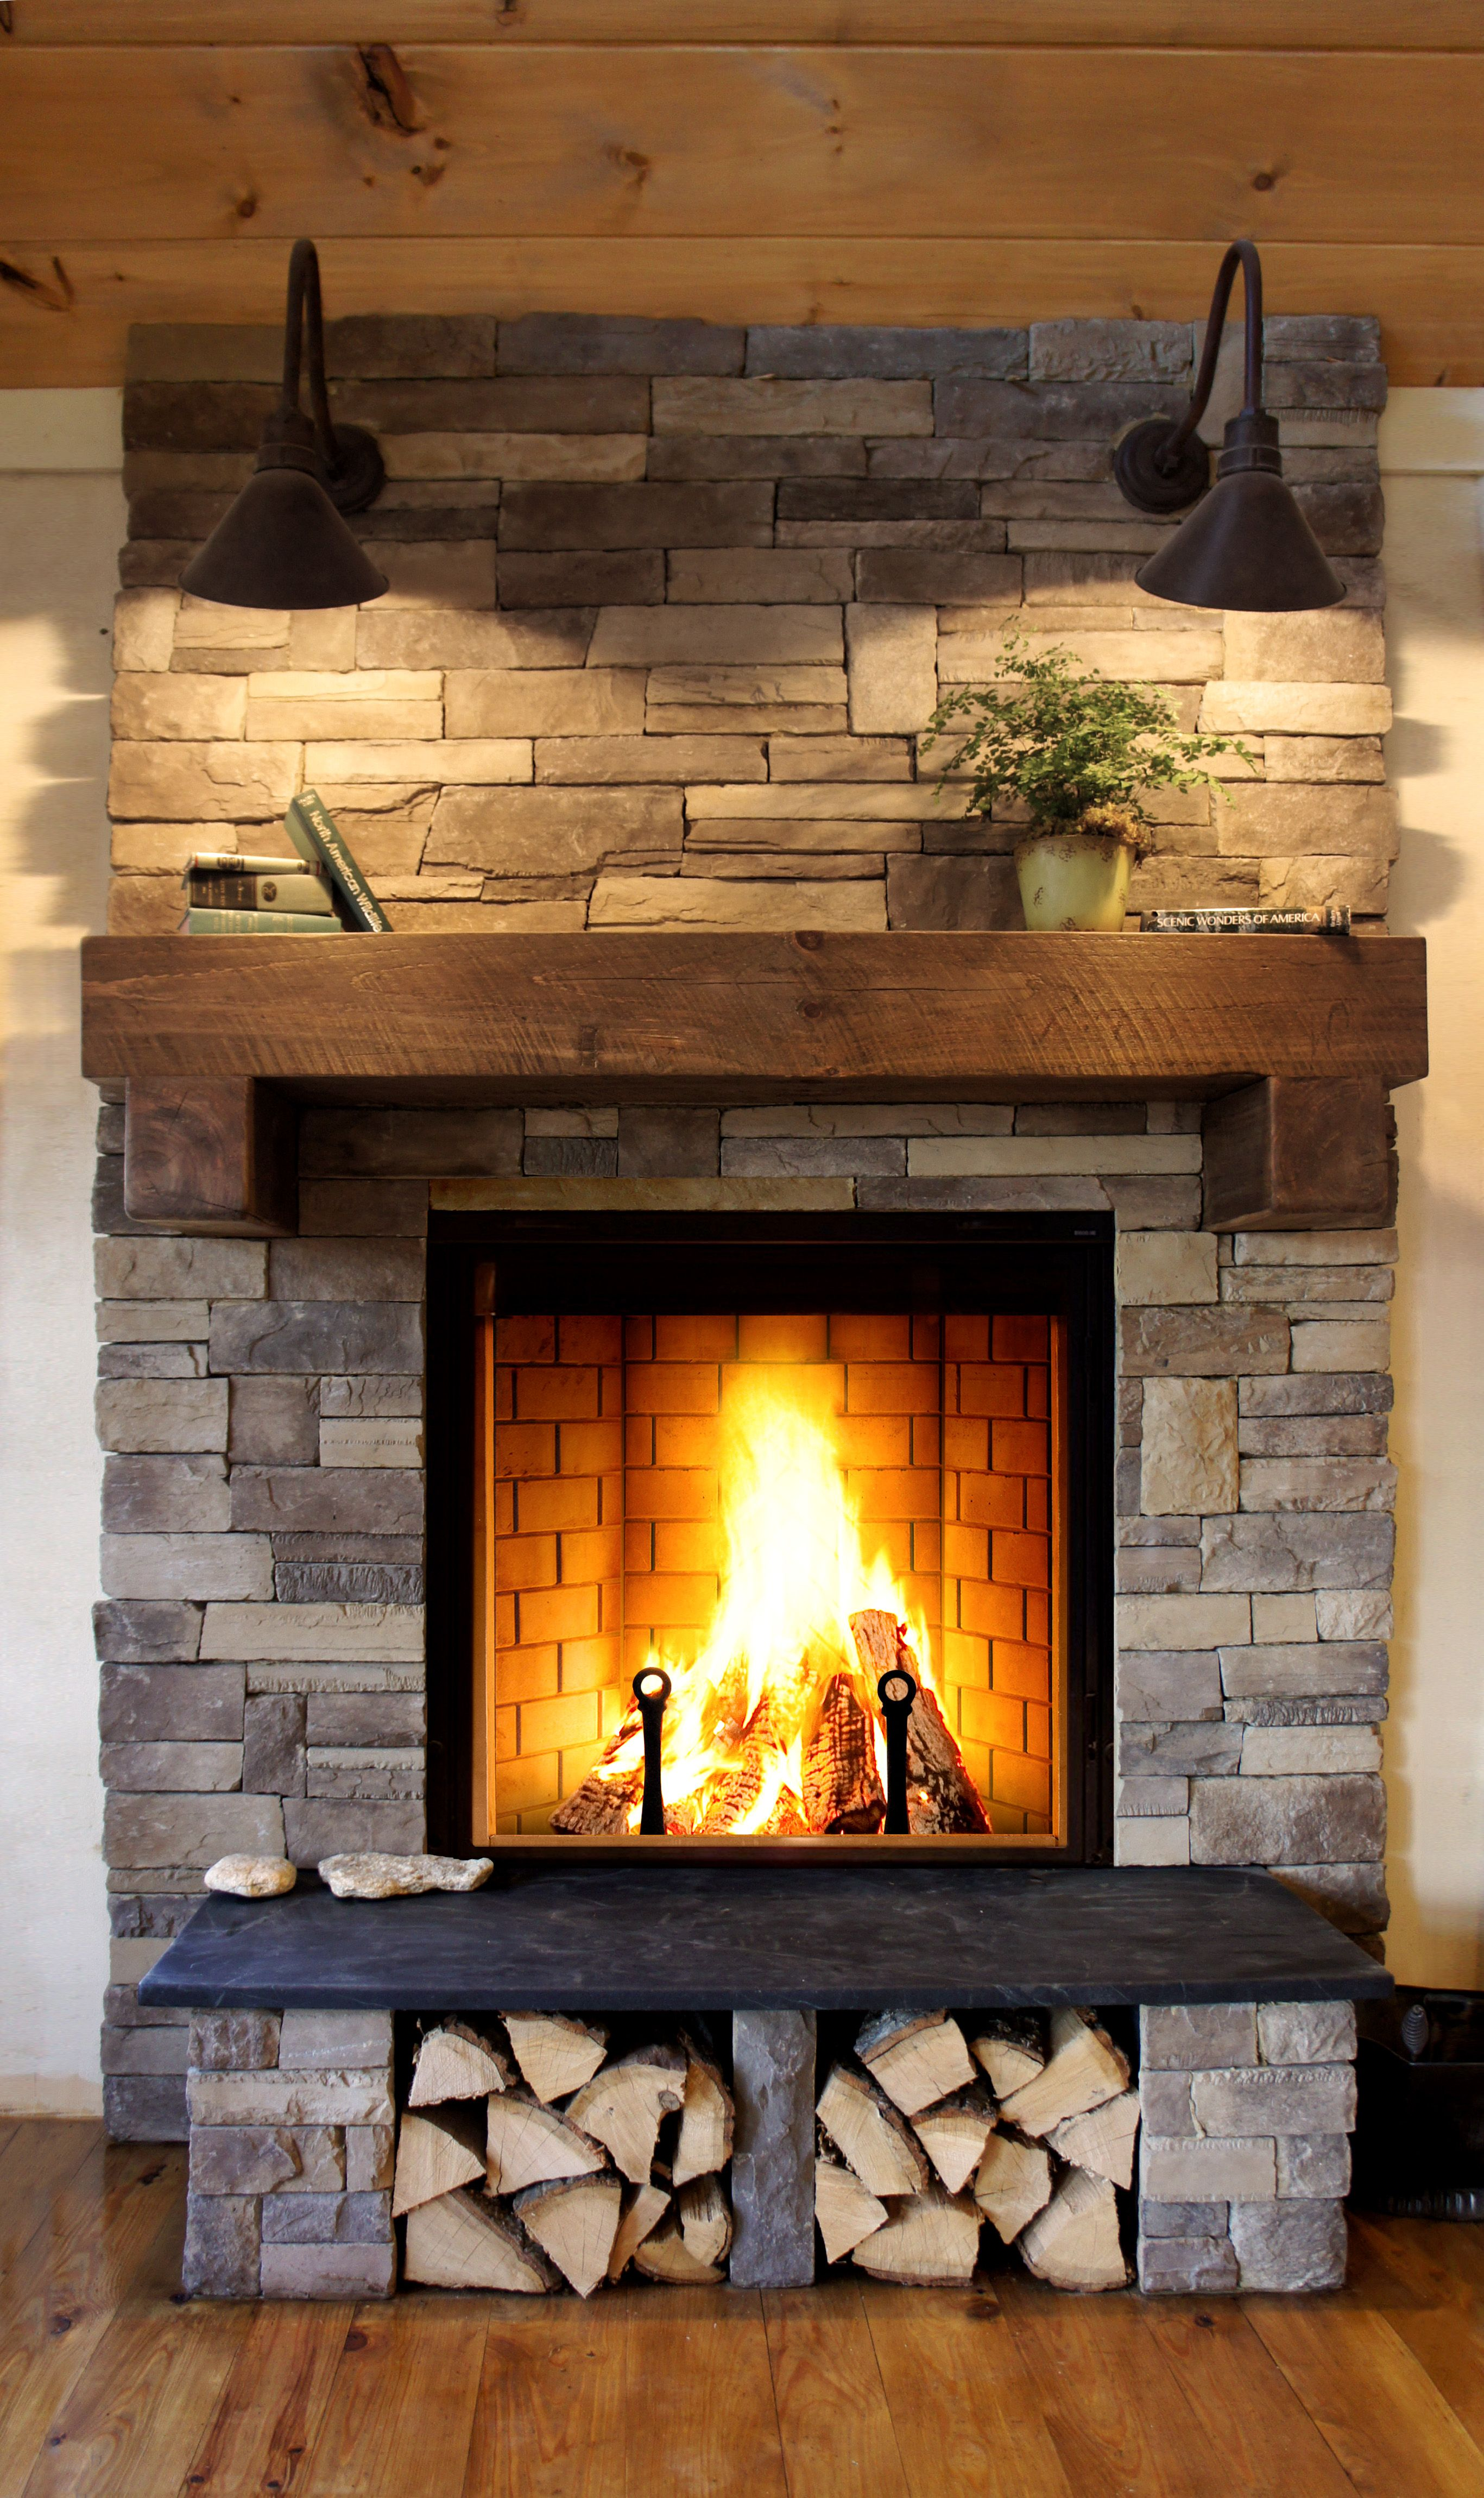 insert rust cladding melbourne stuv modern sided rack inbuilt x fireplaces with oblica wood fireplace hearth designer option single heaters